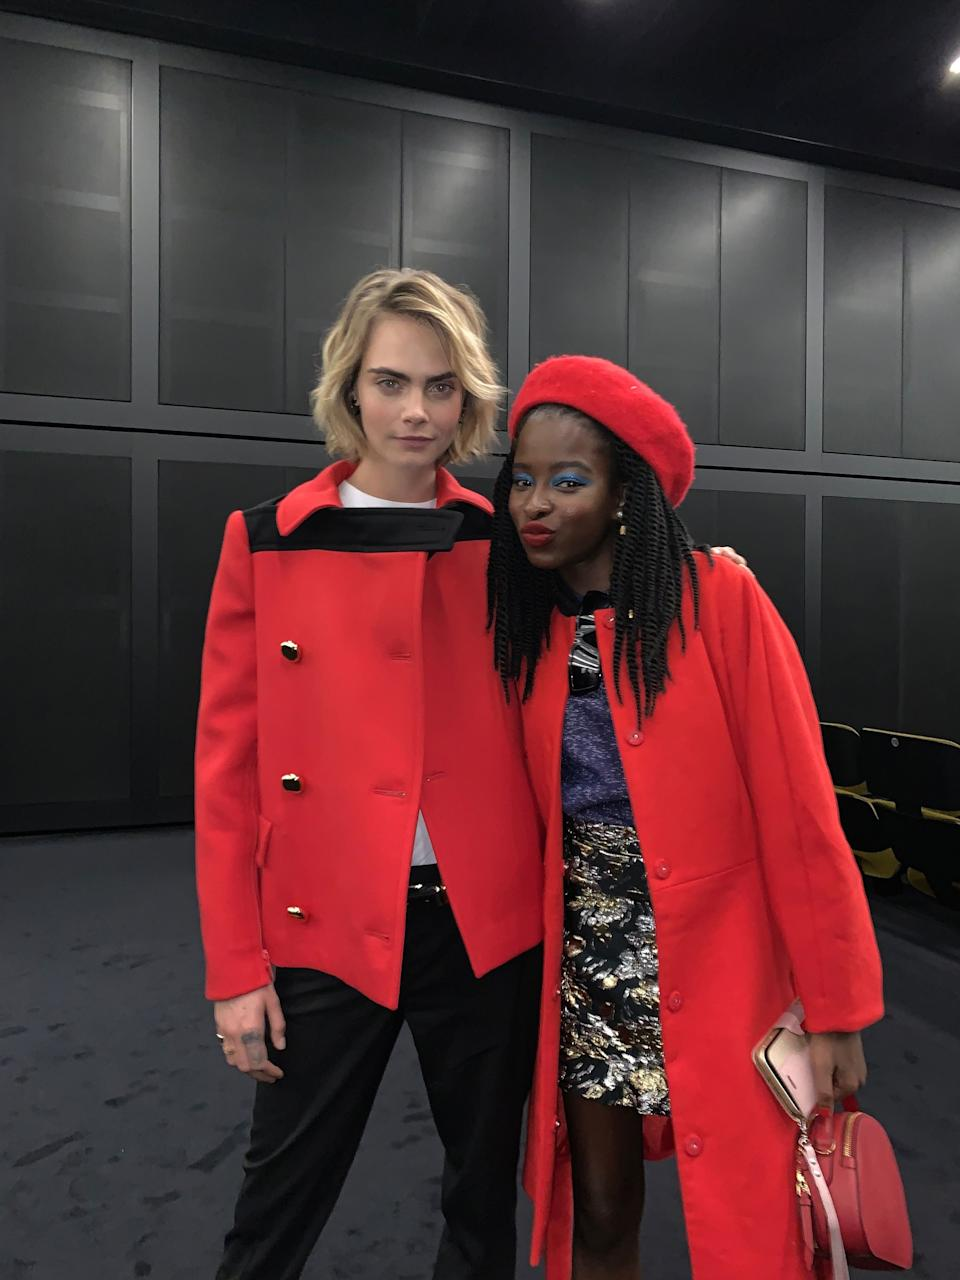 """Throwing shade with the lovely Cara Delevingne at the launch of the new film program, """"Soggettiva Nicolas Winding Refn,"""" at Fondazione Prada Cinema."""